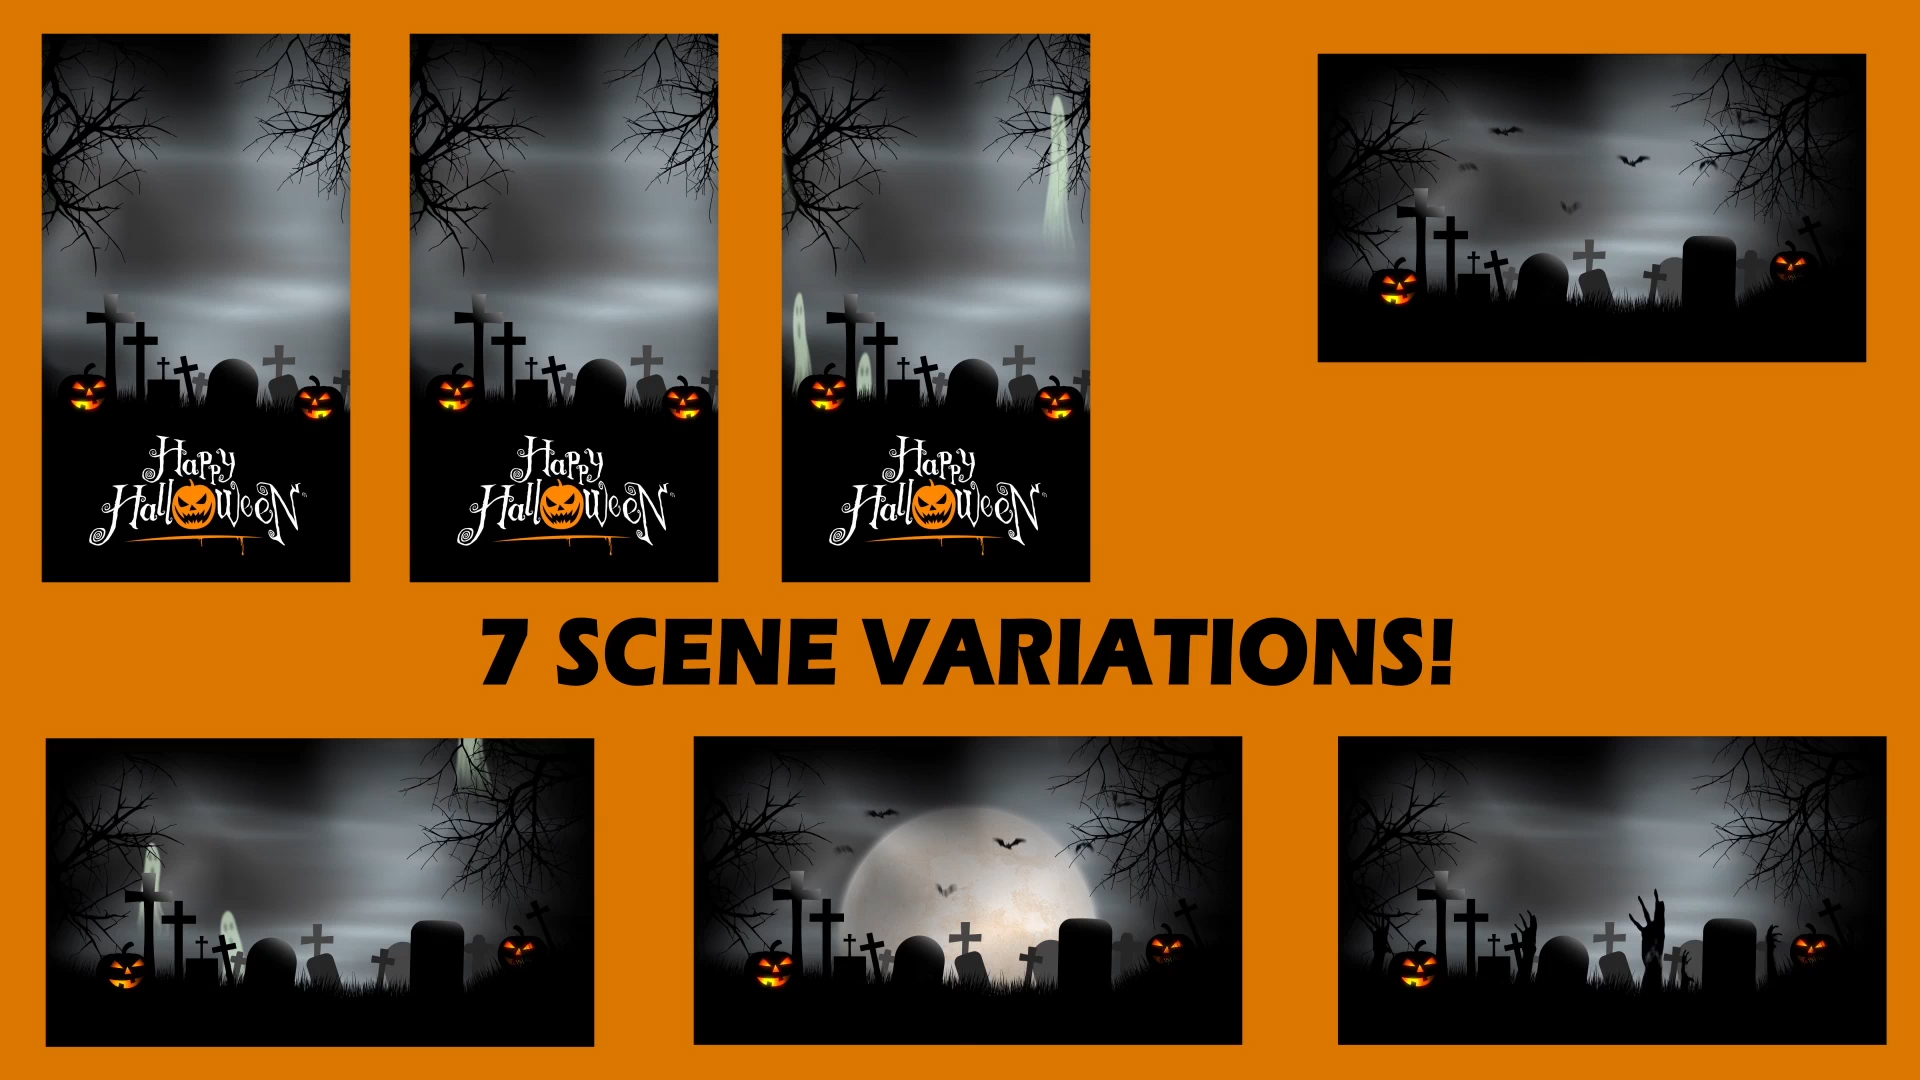 Halloween 2 After Effects Template   $45   MORE INFO   7 spooky scene variations are contained in this halloween graveyard background After Effects Template.  Scene 1 – Ghosts flow up from the graveyard in a seamless loop Scene 2 – A flock of bats descends over the full moon lit graveyard Scene 3 – Hands punch through the earth and reach out of the graveyard Scene 4 – A flock of bats descends over the graveyard (no mooon) Scene 5 – A vertical loop designed for vertical / digital signage purposes Scene 6 – Vertical scene with bats Scene 7 – Vertical scene with ghosts  Each item is layered and ready for editing, change out logos, colors, add text or re-time the animations to make it your own.   AFTER EFFECTS VERSION:  CS3, CS4, CS5, CS6, CC (Creative Cloud)  RESOLUTION:  1920 X 1080 HD  PLUGINS REQUIRED:  None  FILE SIZE:  1.8 GB  MUSIC INCLUDED:  No (link provided)  VIDEO TUTORIAL:  Included  Compatible with After Effects CC, CS3, CS4, CS5, CS6 & CC (Creative Cloud)